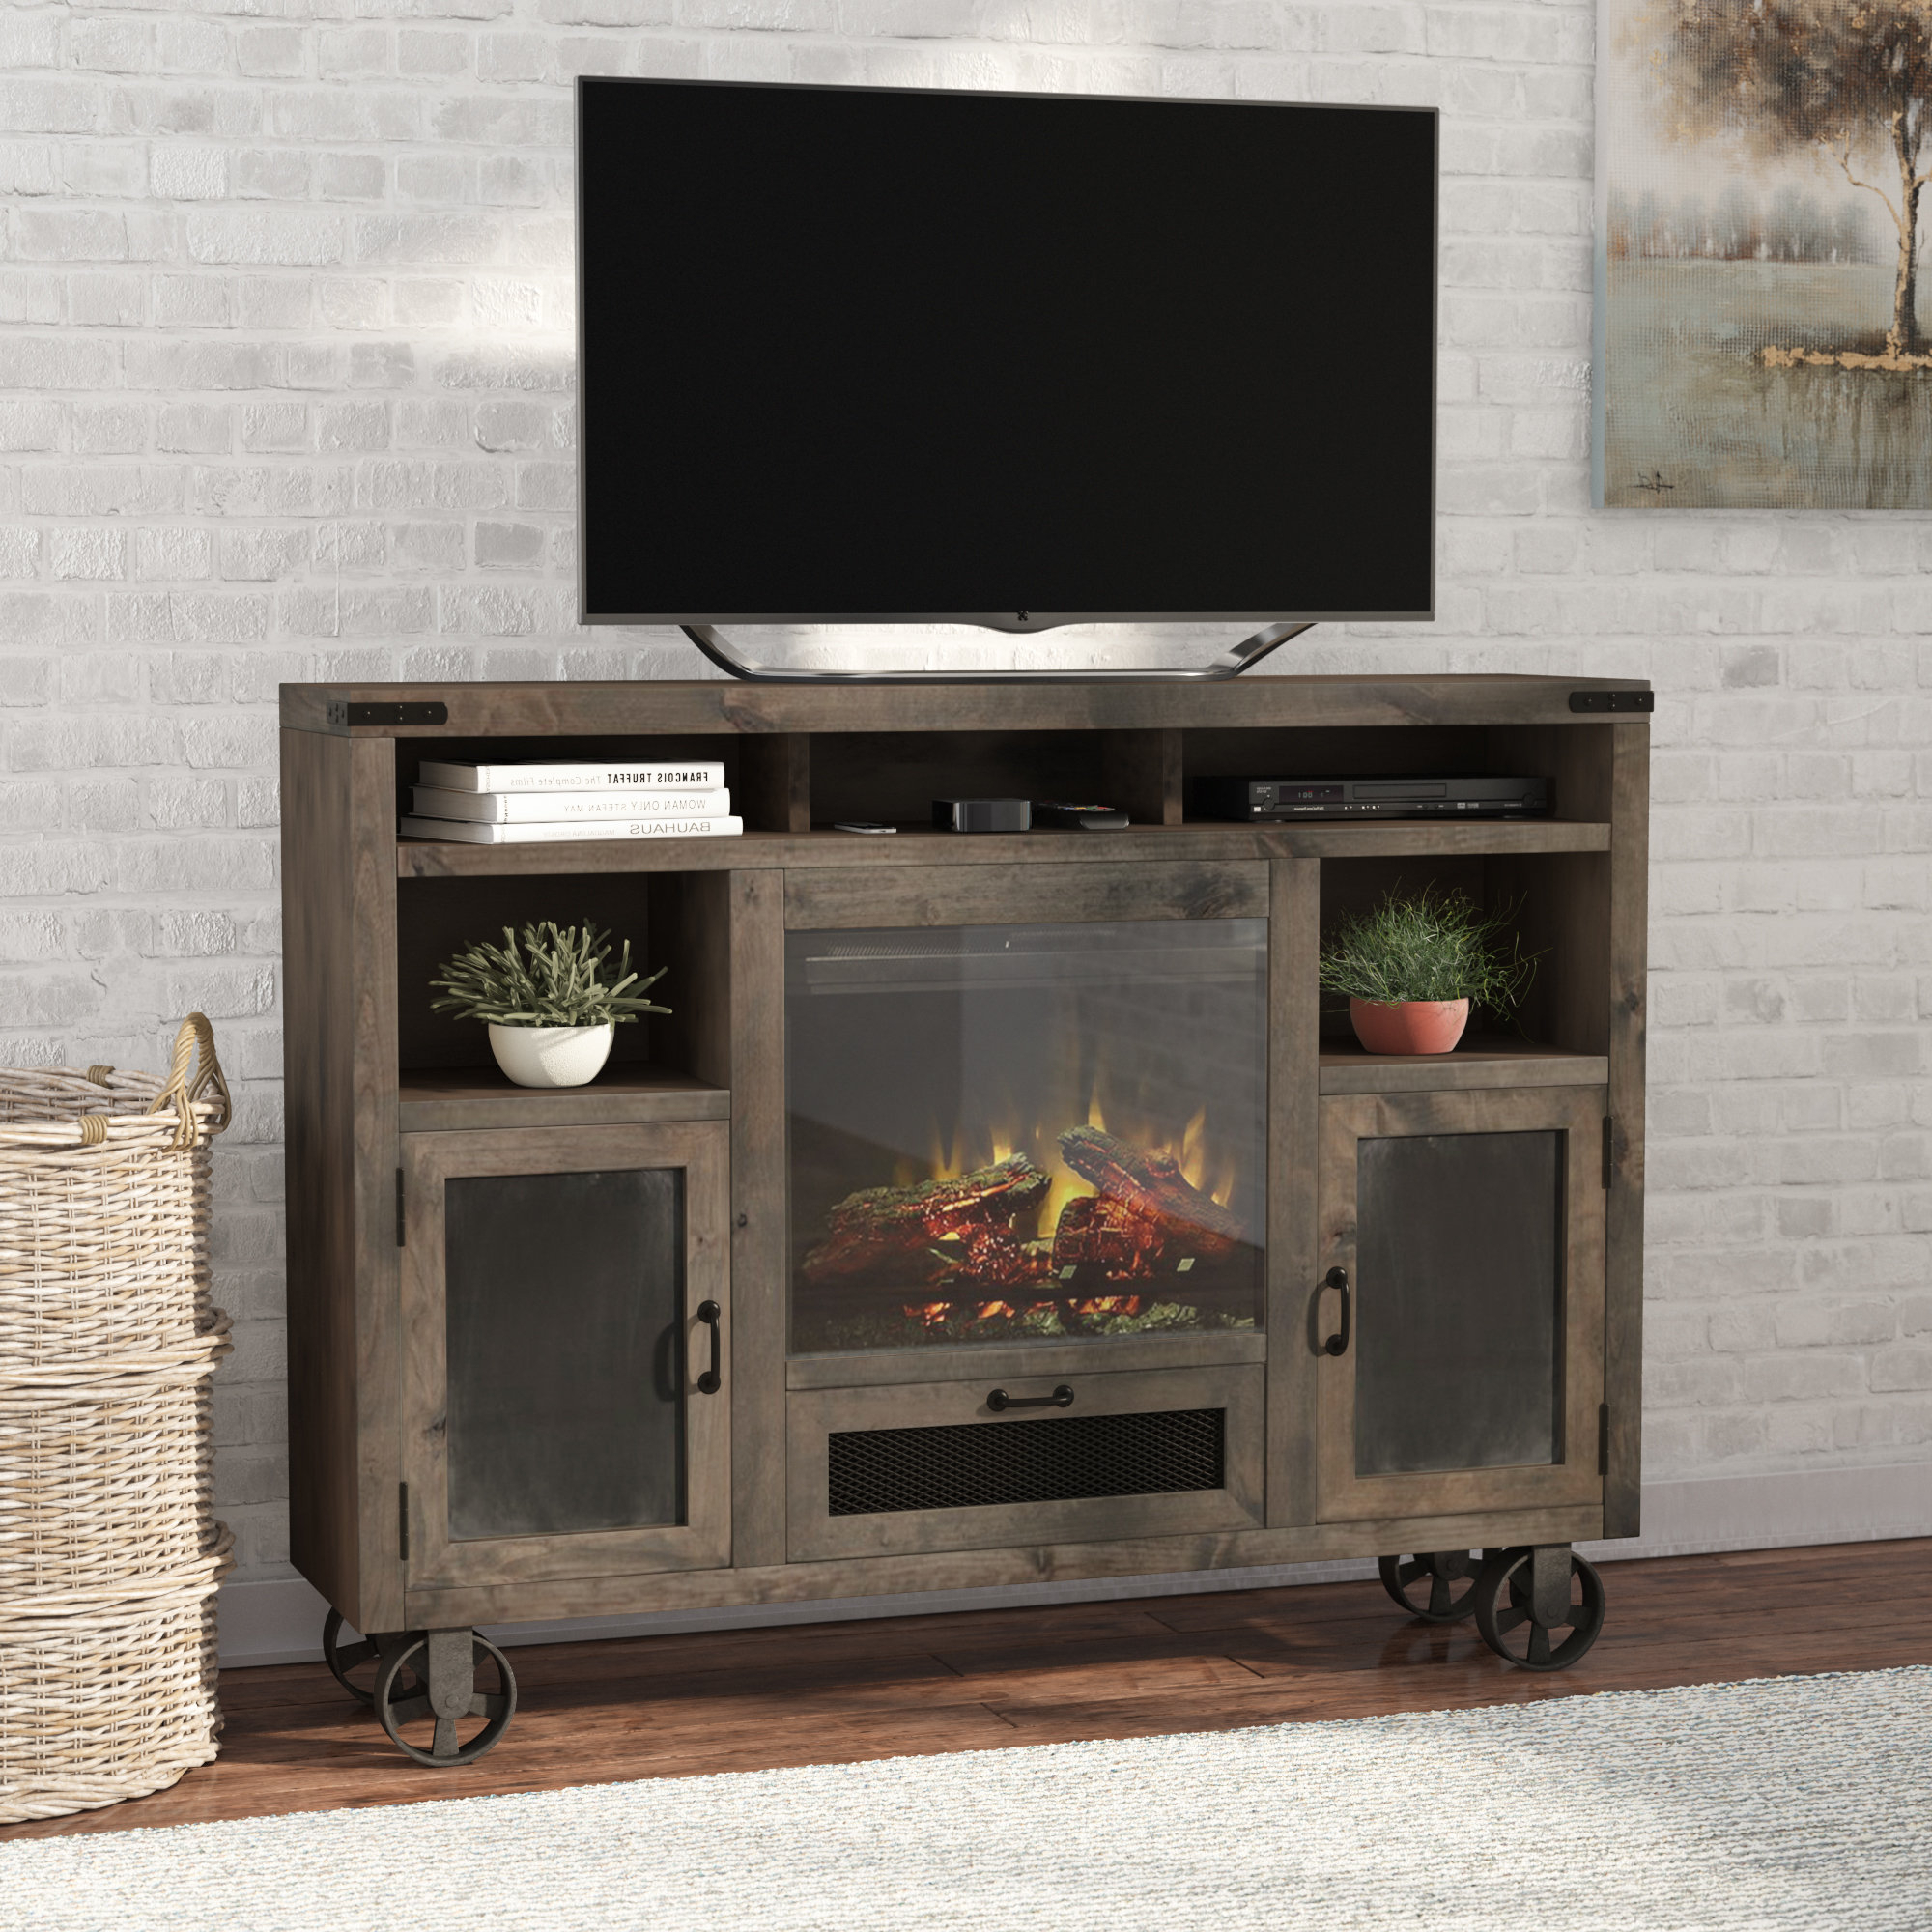 Oak Tv Stands For Flat Screens Inside Most Current Tall Tv Stands You'll Love (Gallery 17 of 20)